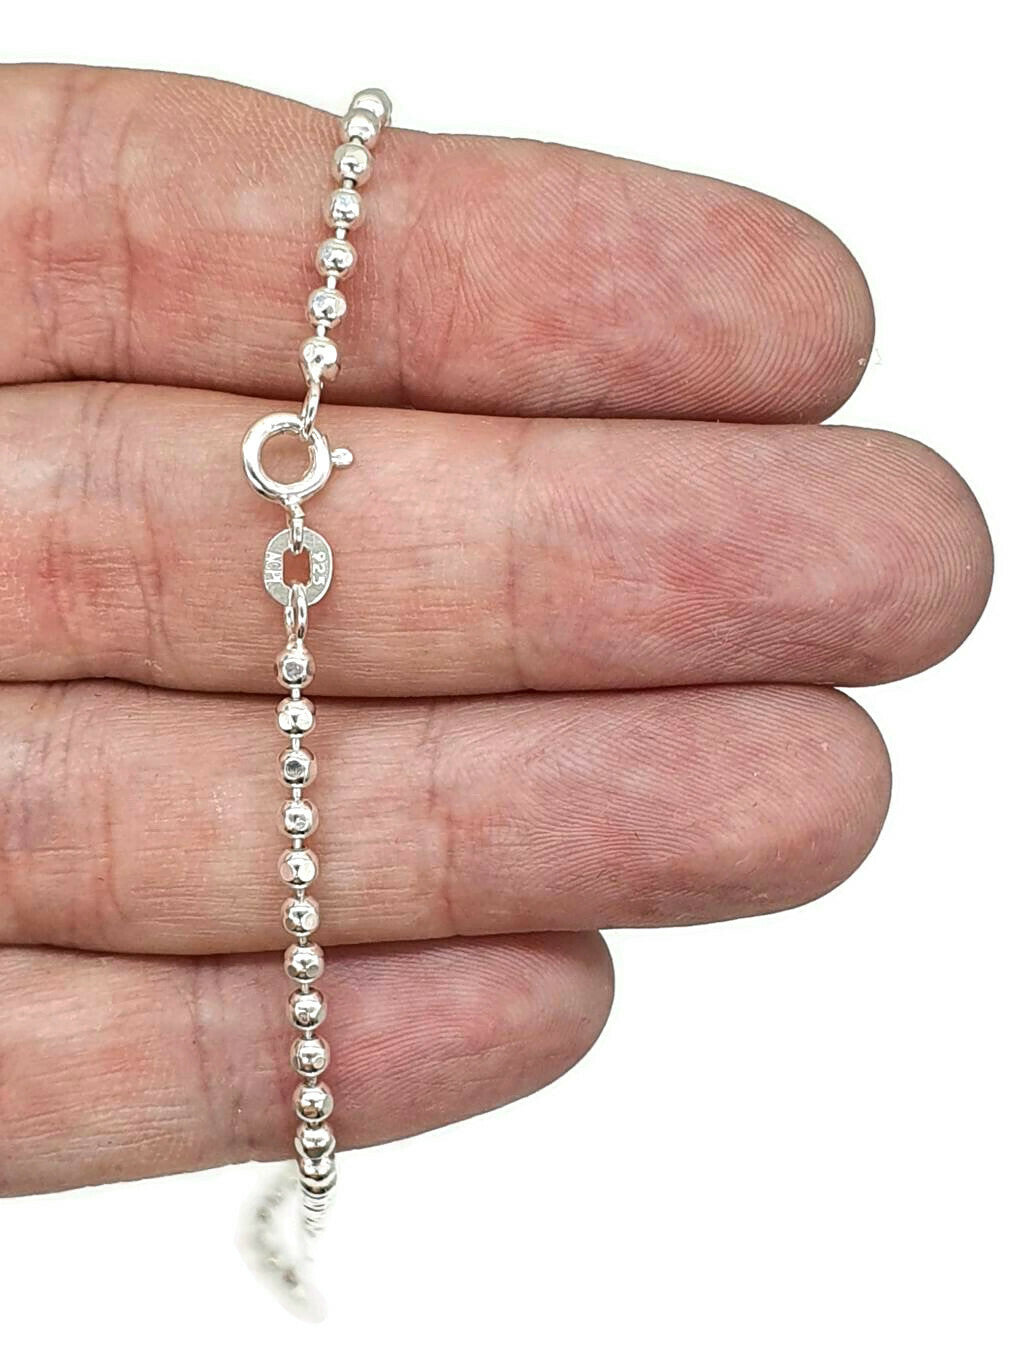 Sterling Silver Chain, 46 cm, 18 inches, Beaded Chain, Ball Chain